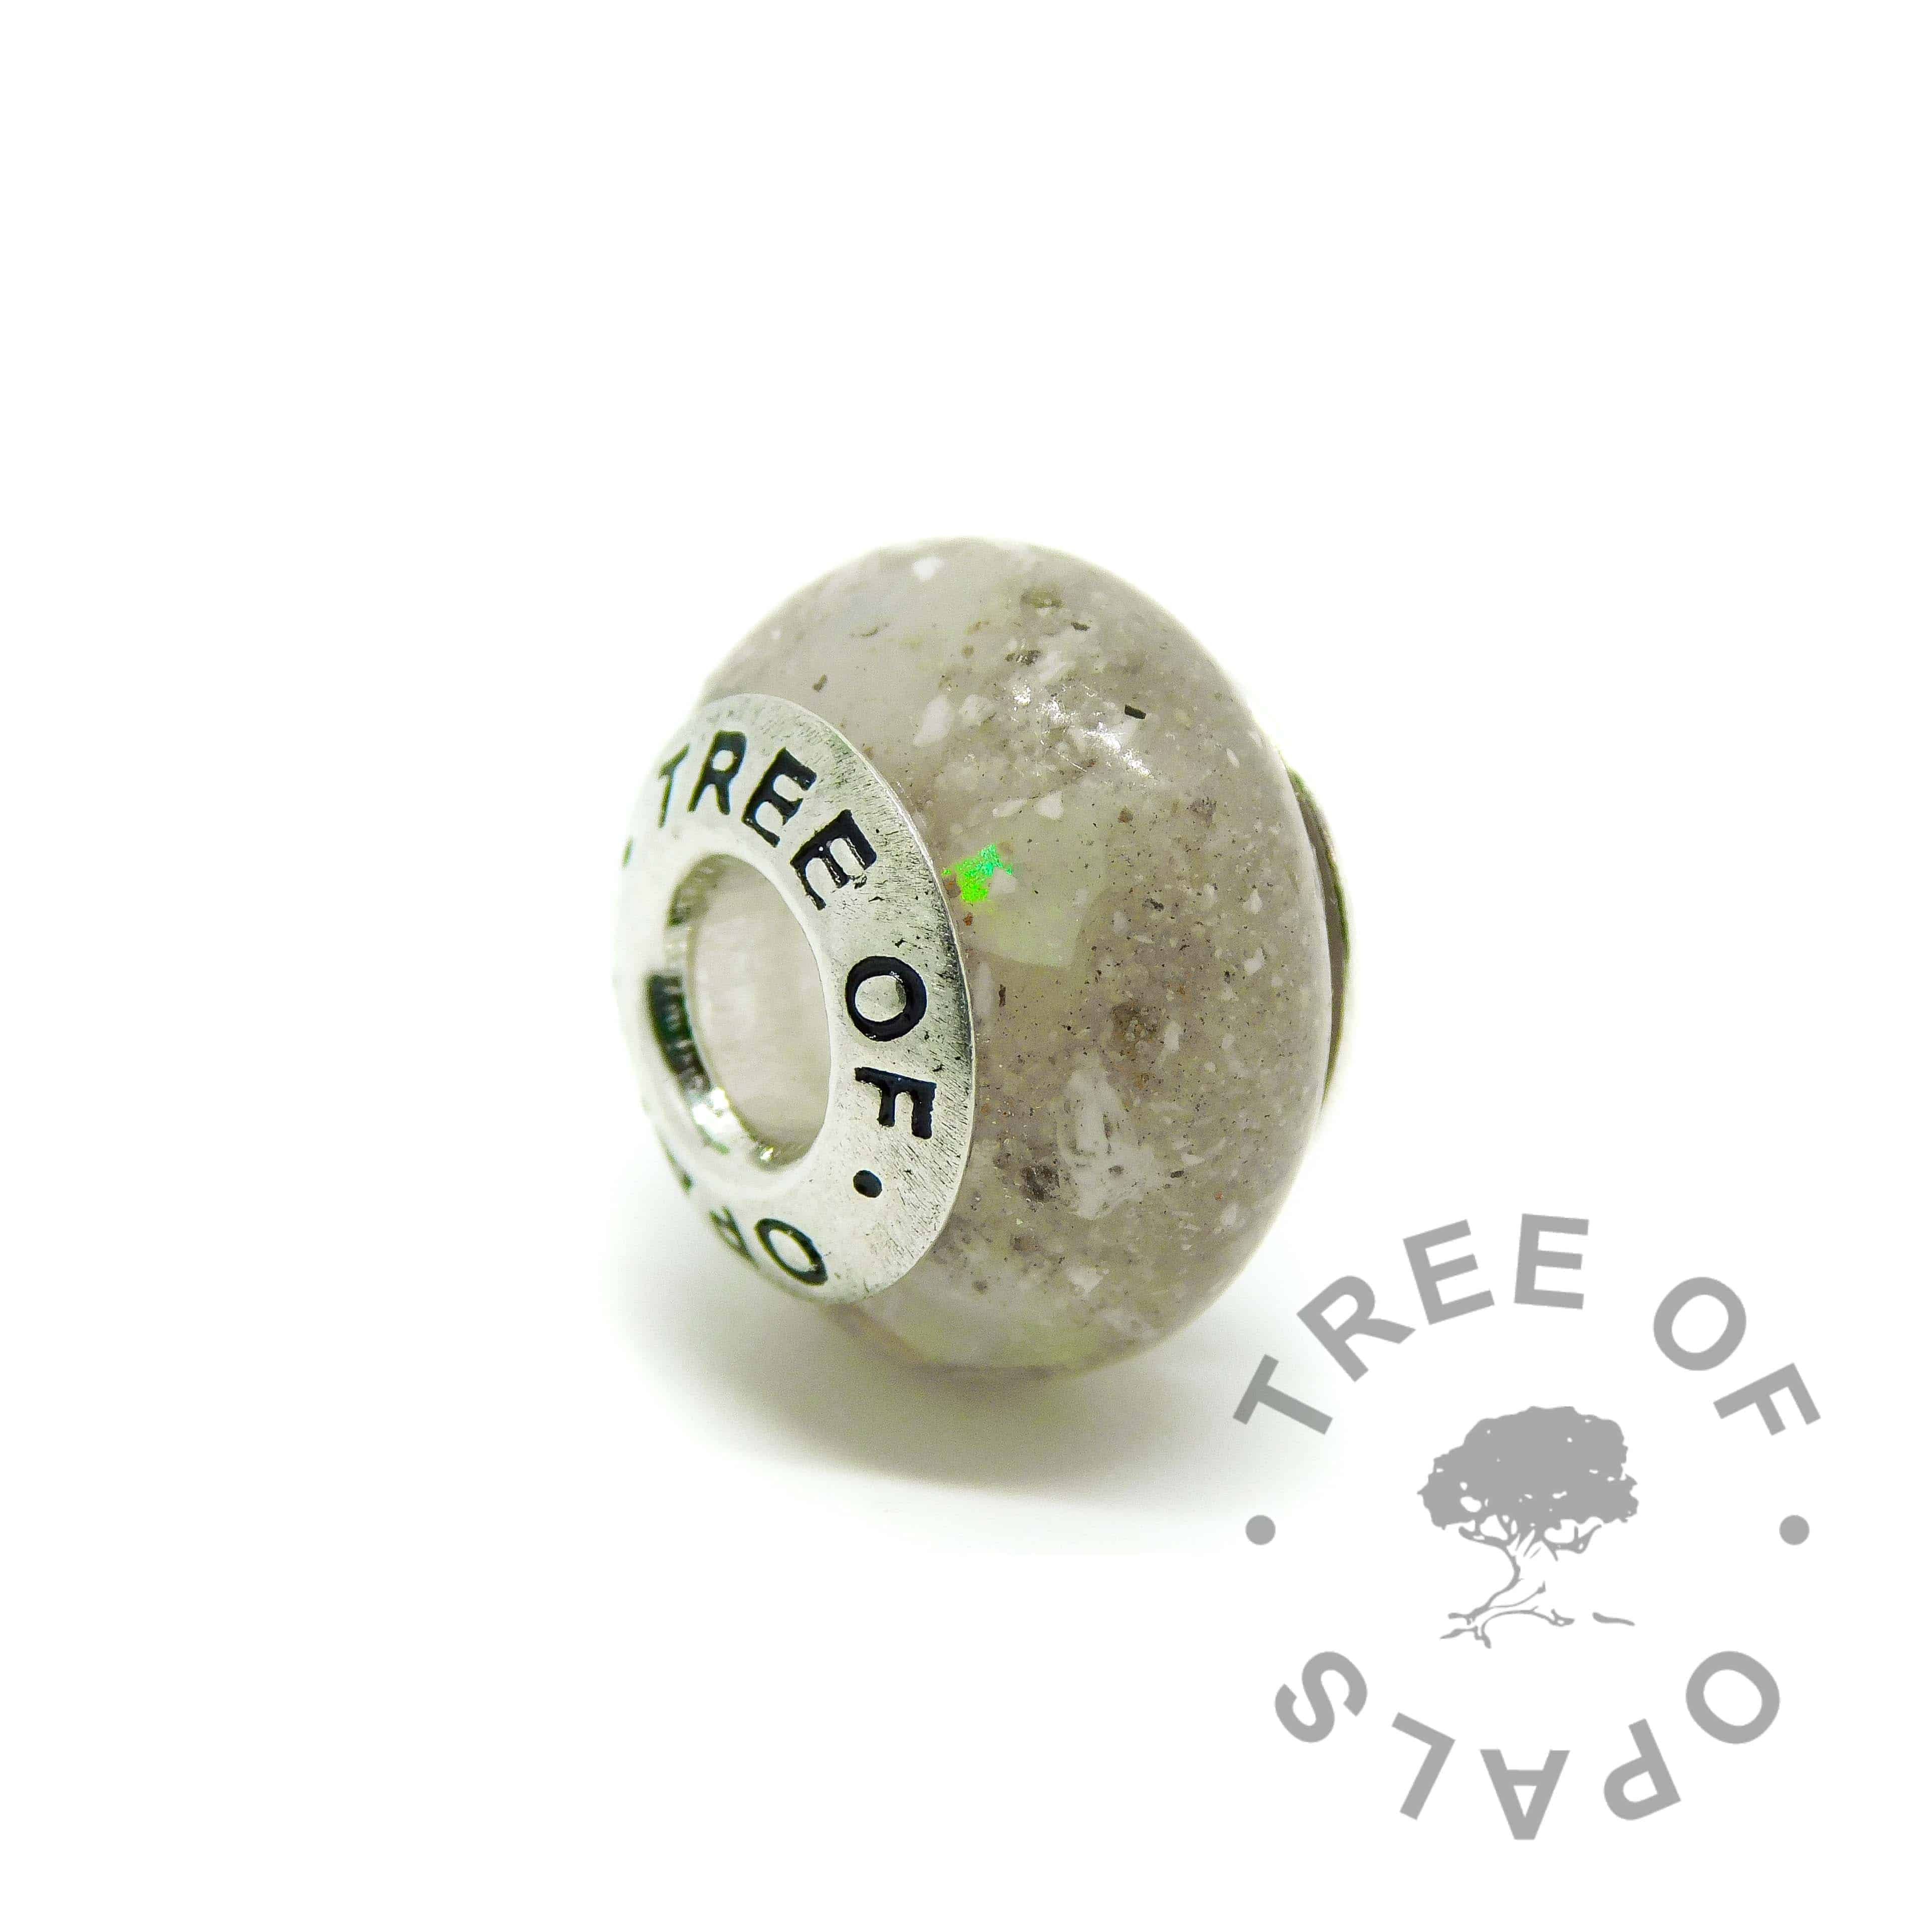 cremation ash charm unicorn white sparkle mix, October birthstone genuine opal slices, solid silver Tree of Opals core